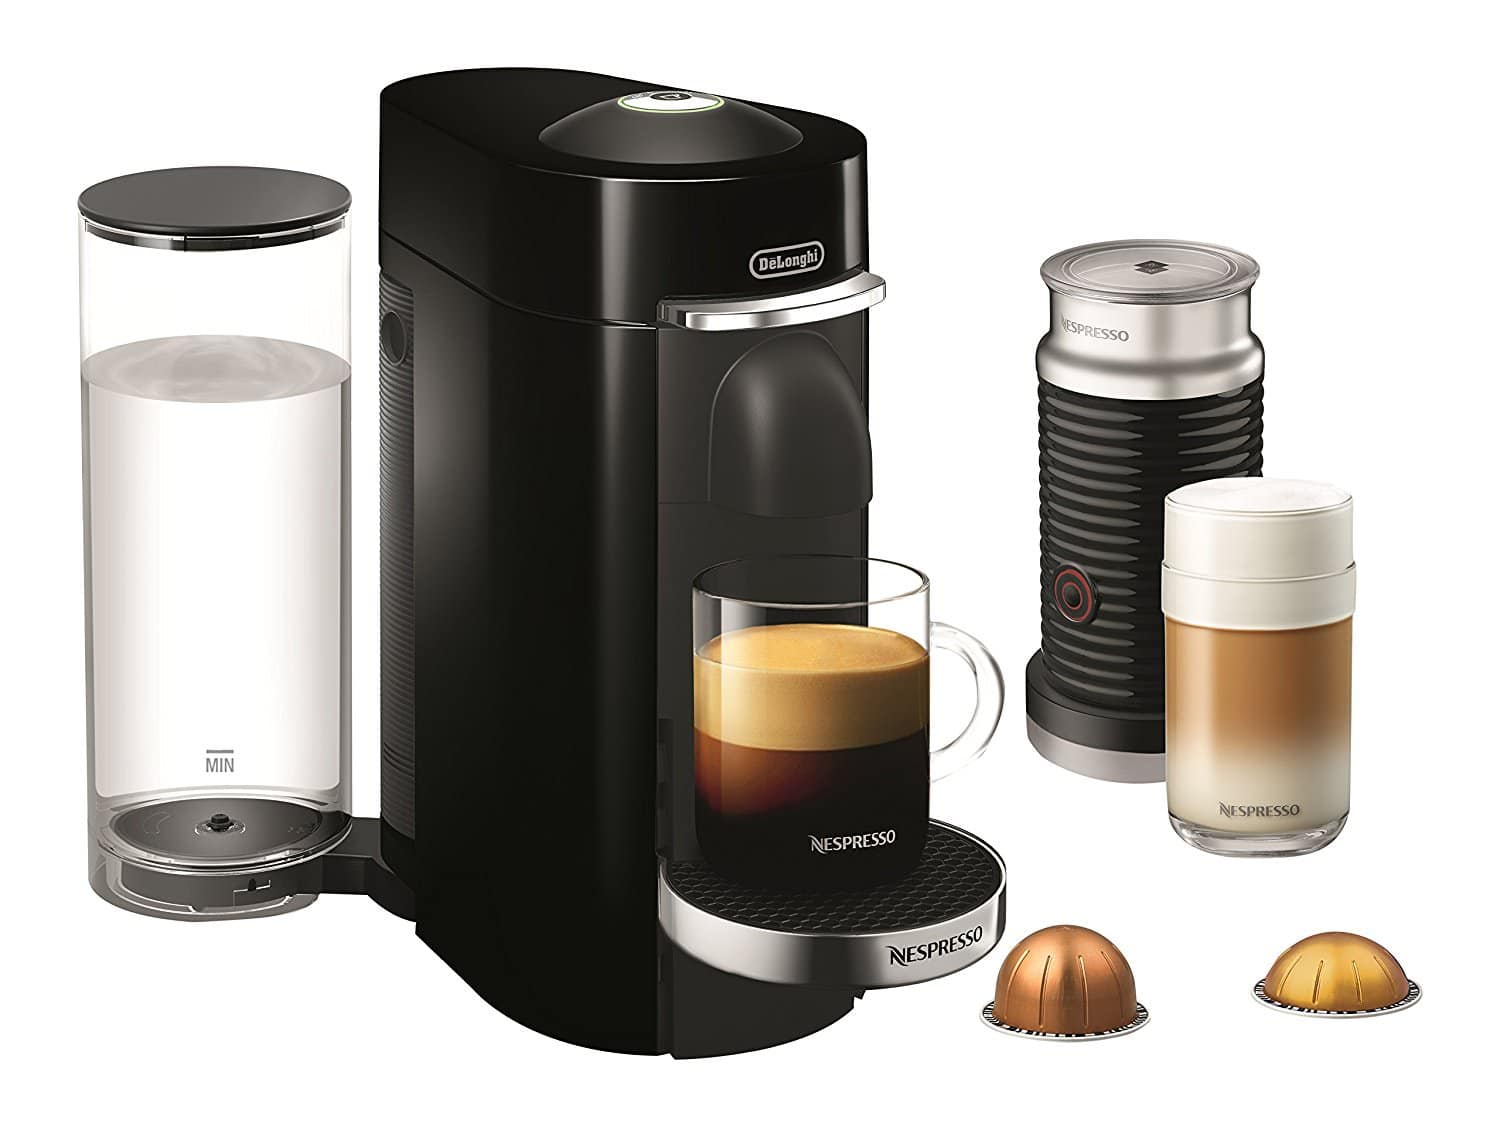 Nespresso VertuoPlus Deluxe Coffee & Espresso Maker by De'Longhi w/ Aeroccino 3 Milk Frother $102.49 + free shipping (or $97 w/ REDcard)